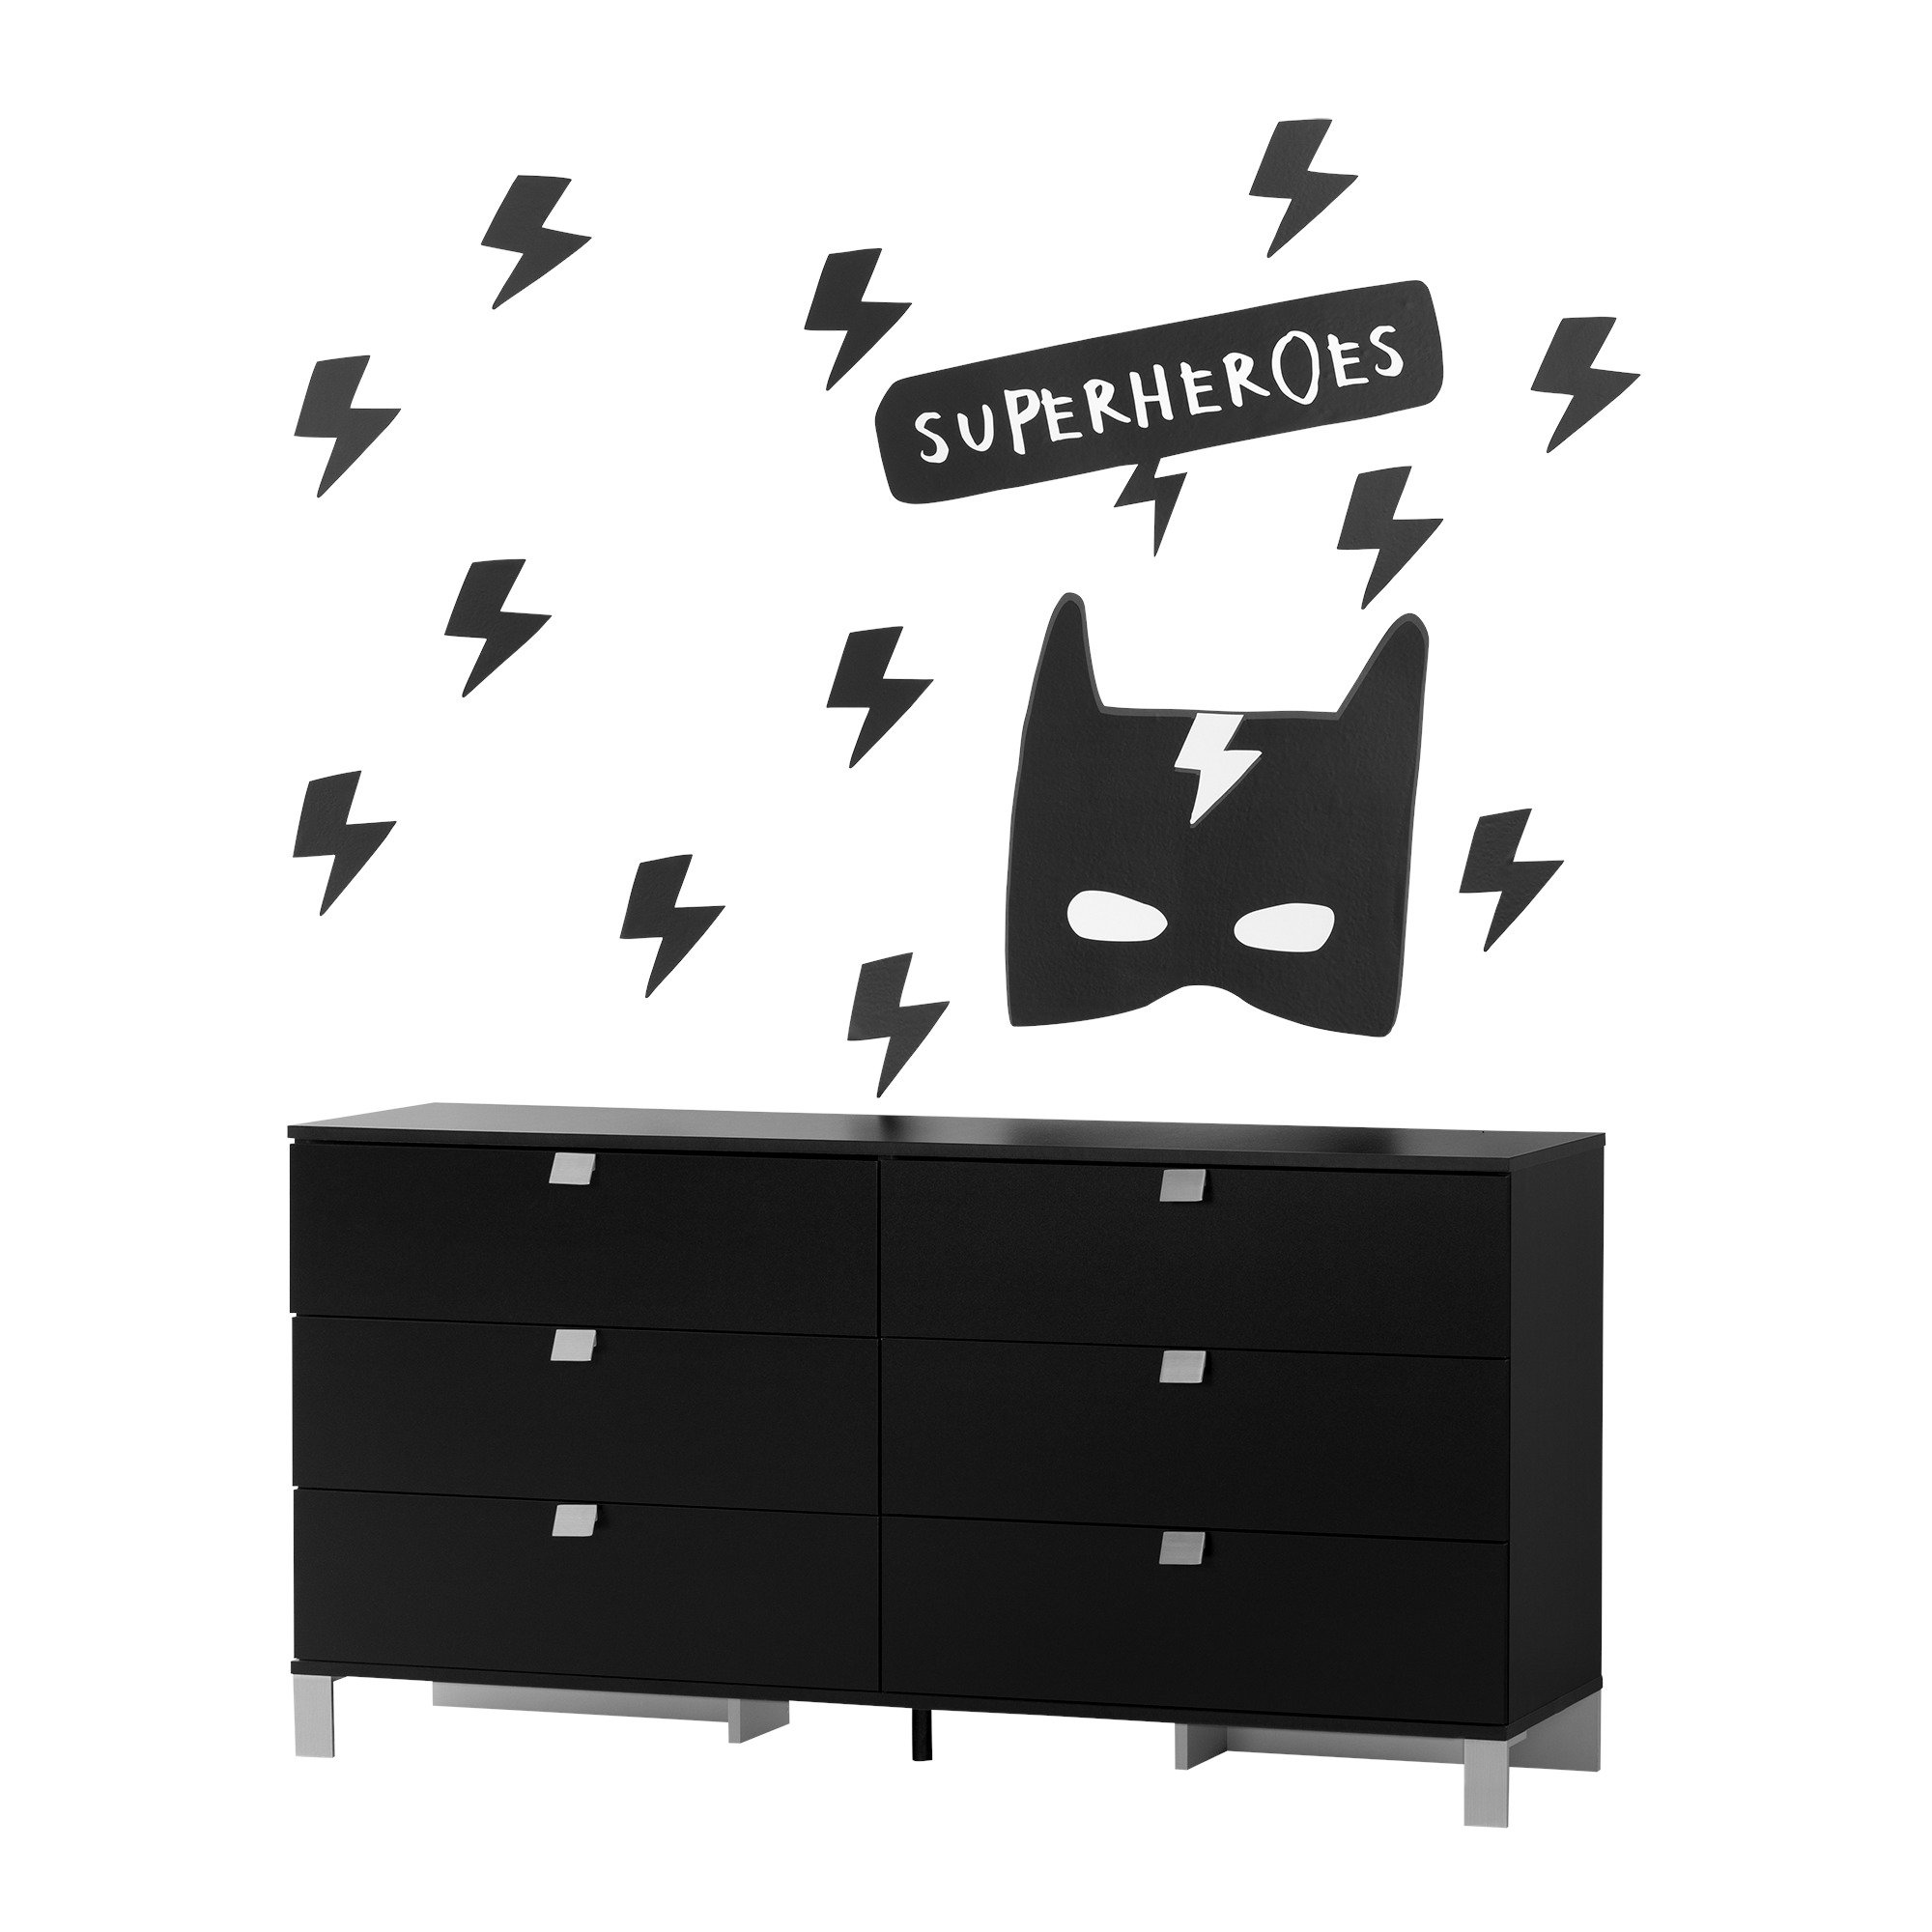 South Shore Spark Pure Black 6-Drawer Double Dresser with Superheroes Wall Decals